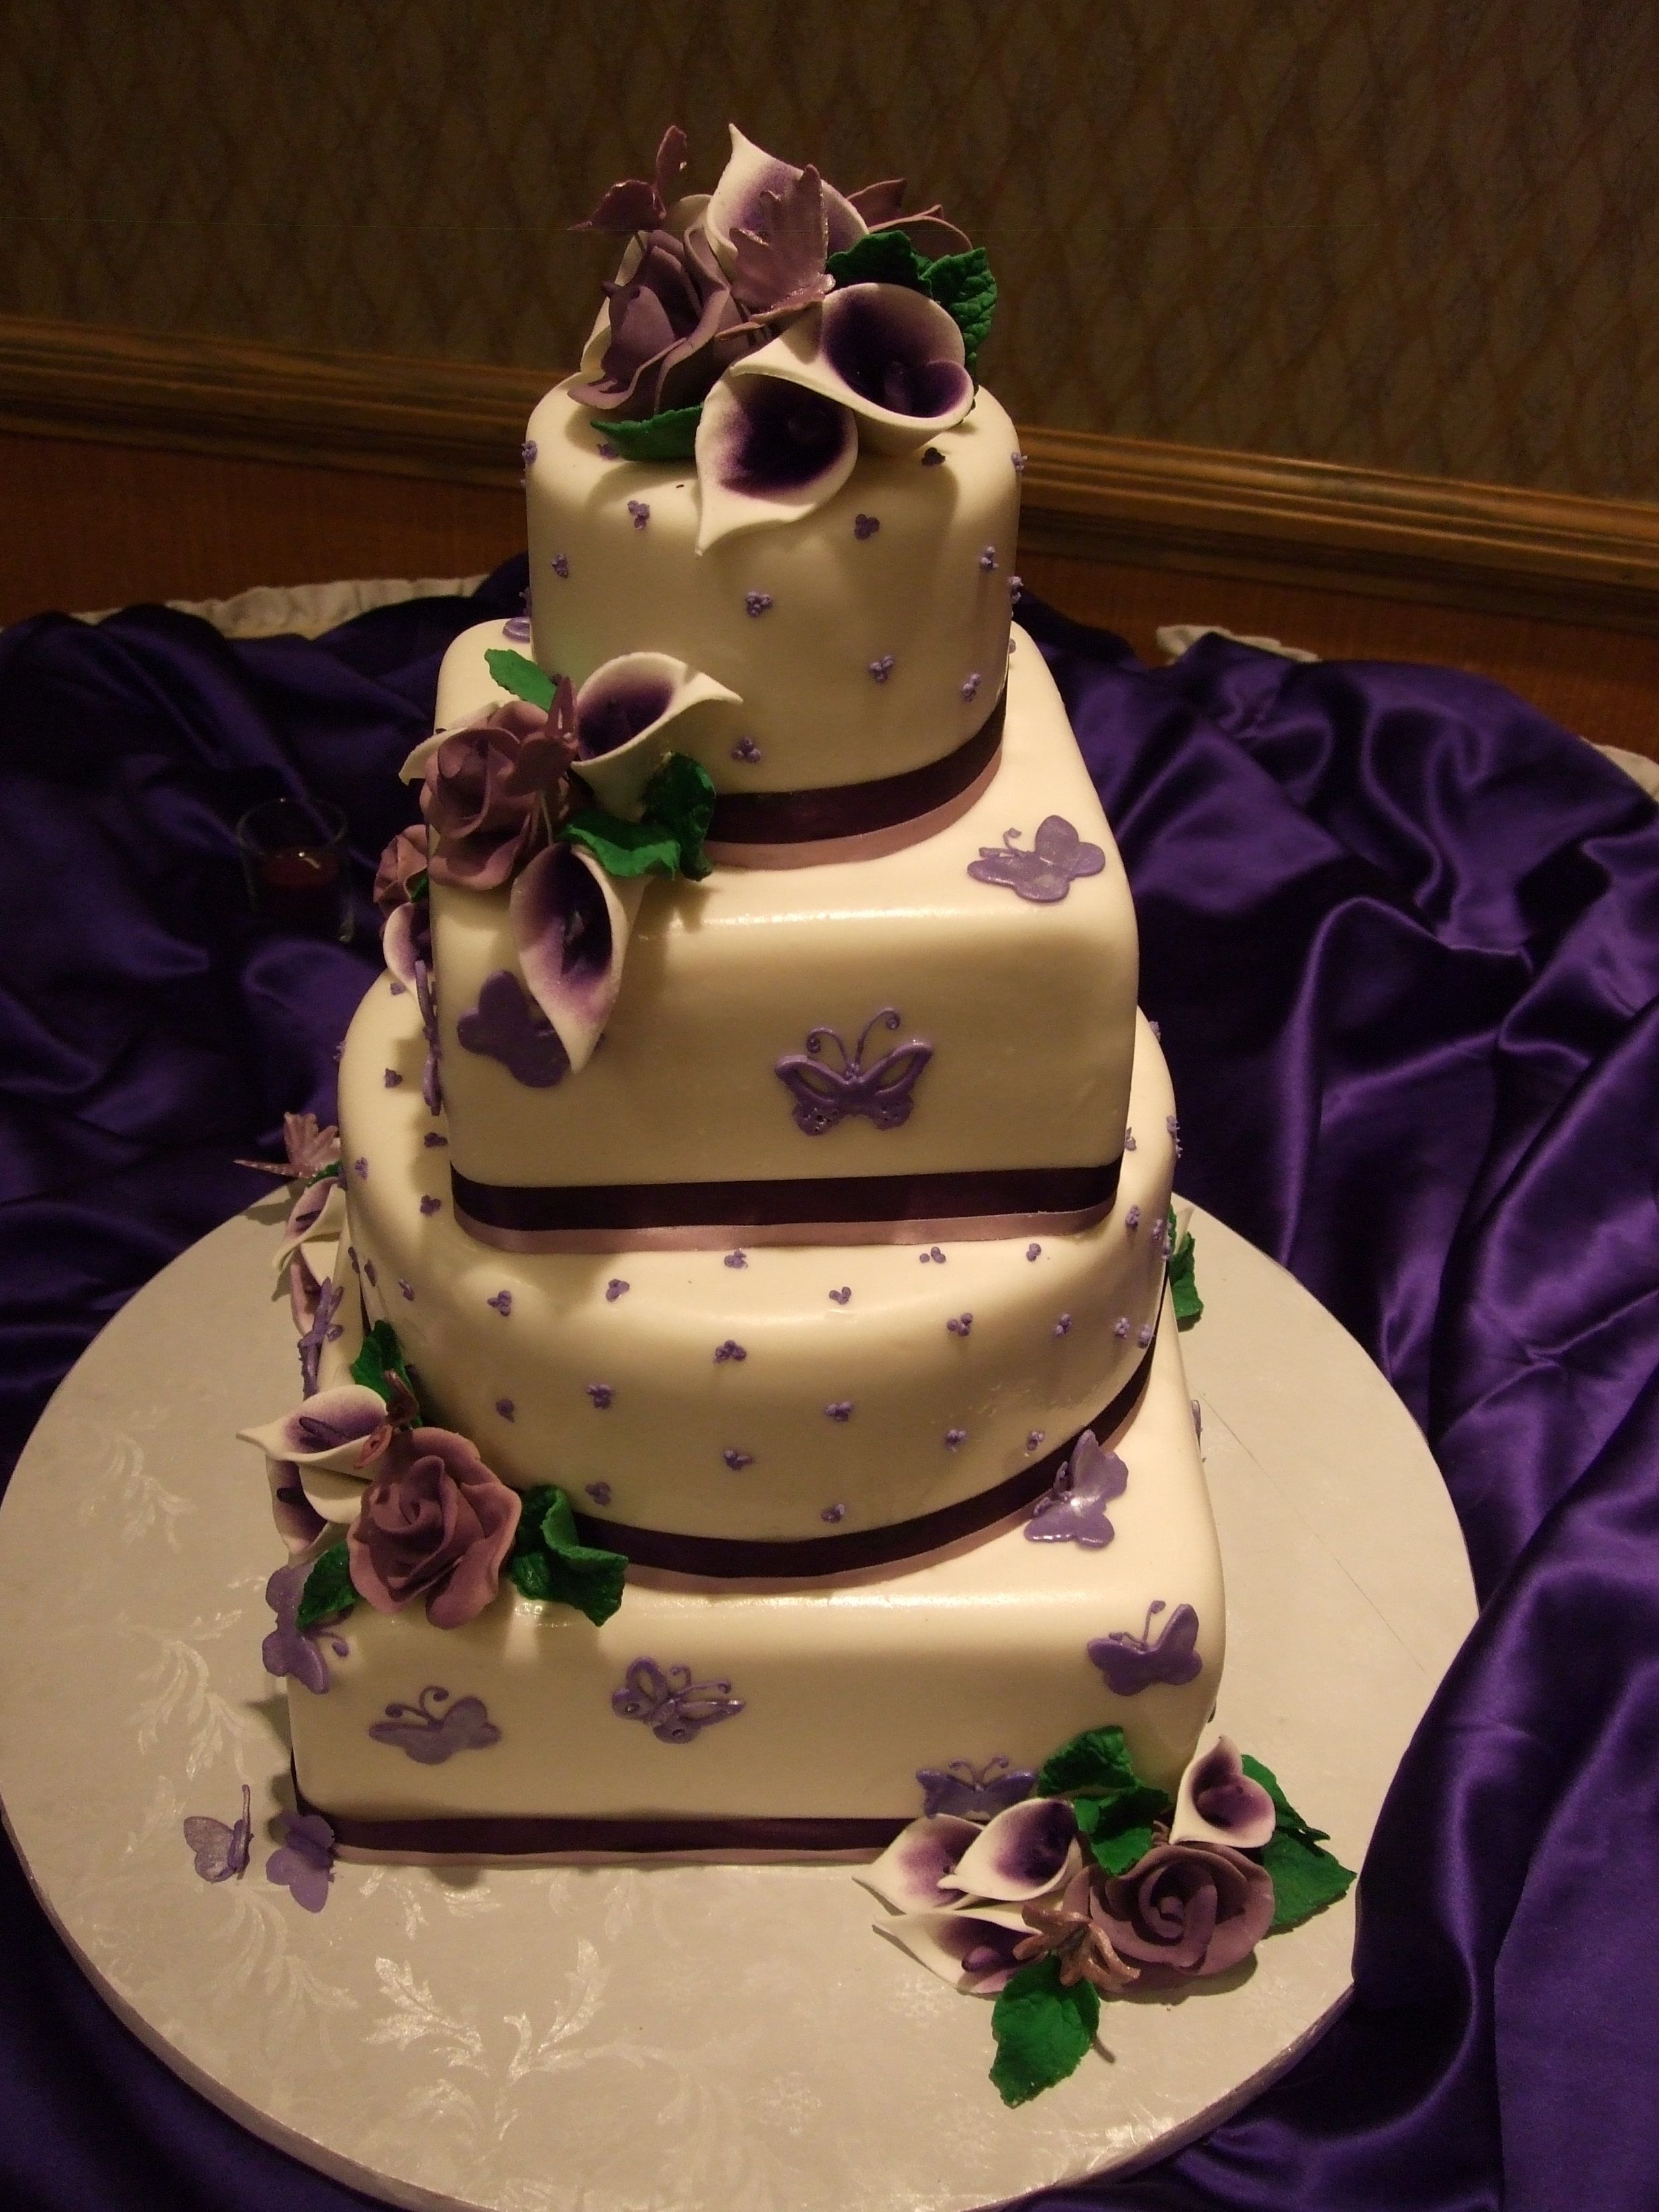 Wedding Cakes From Sams Club 2472px I WANT THIS ONE